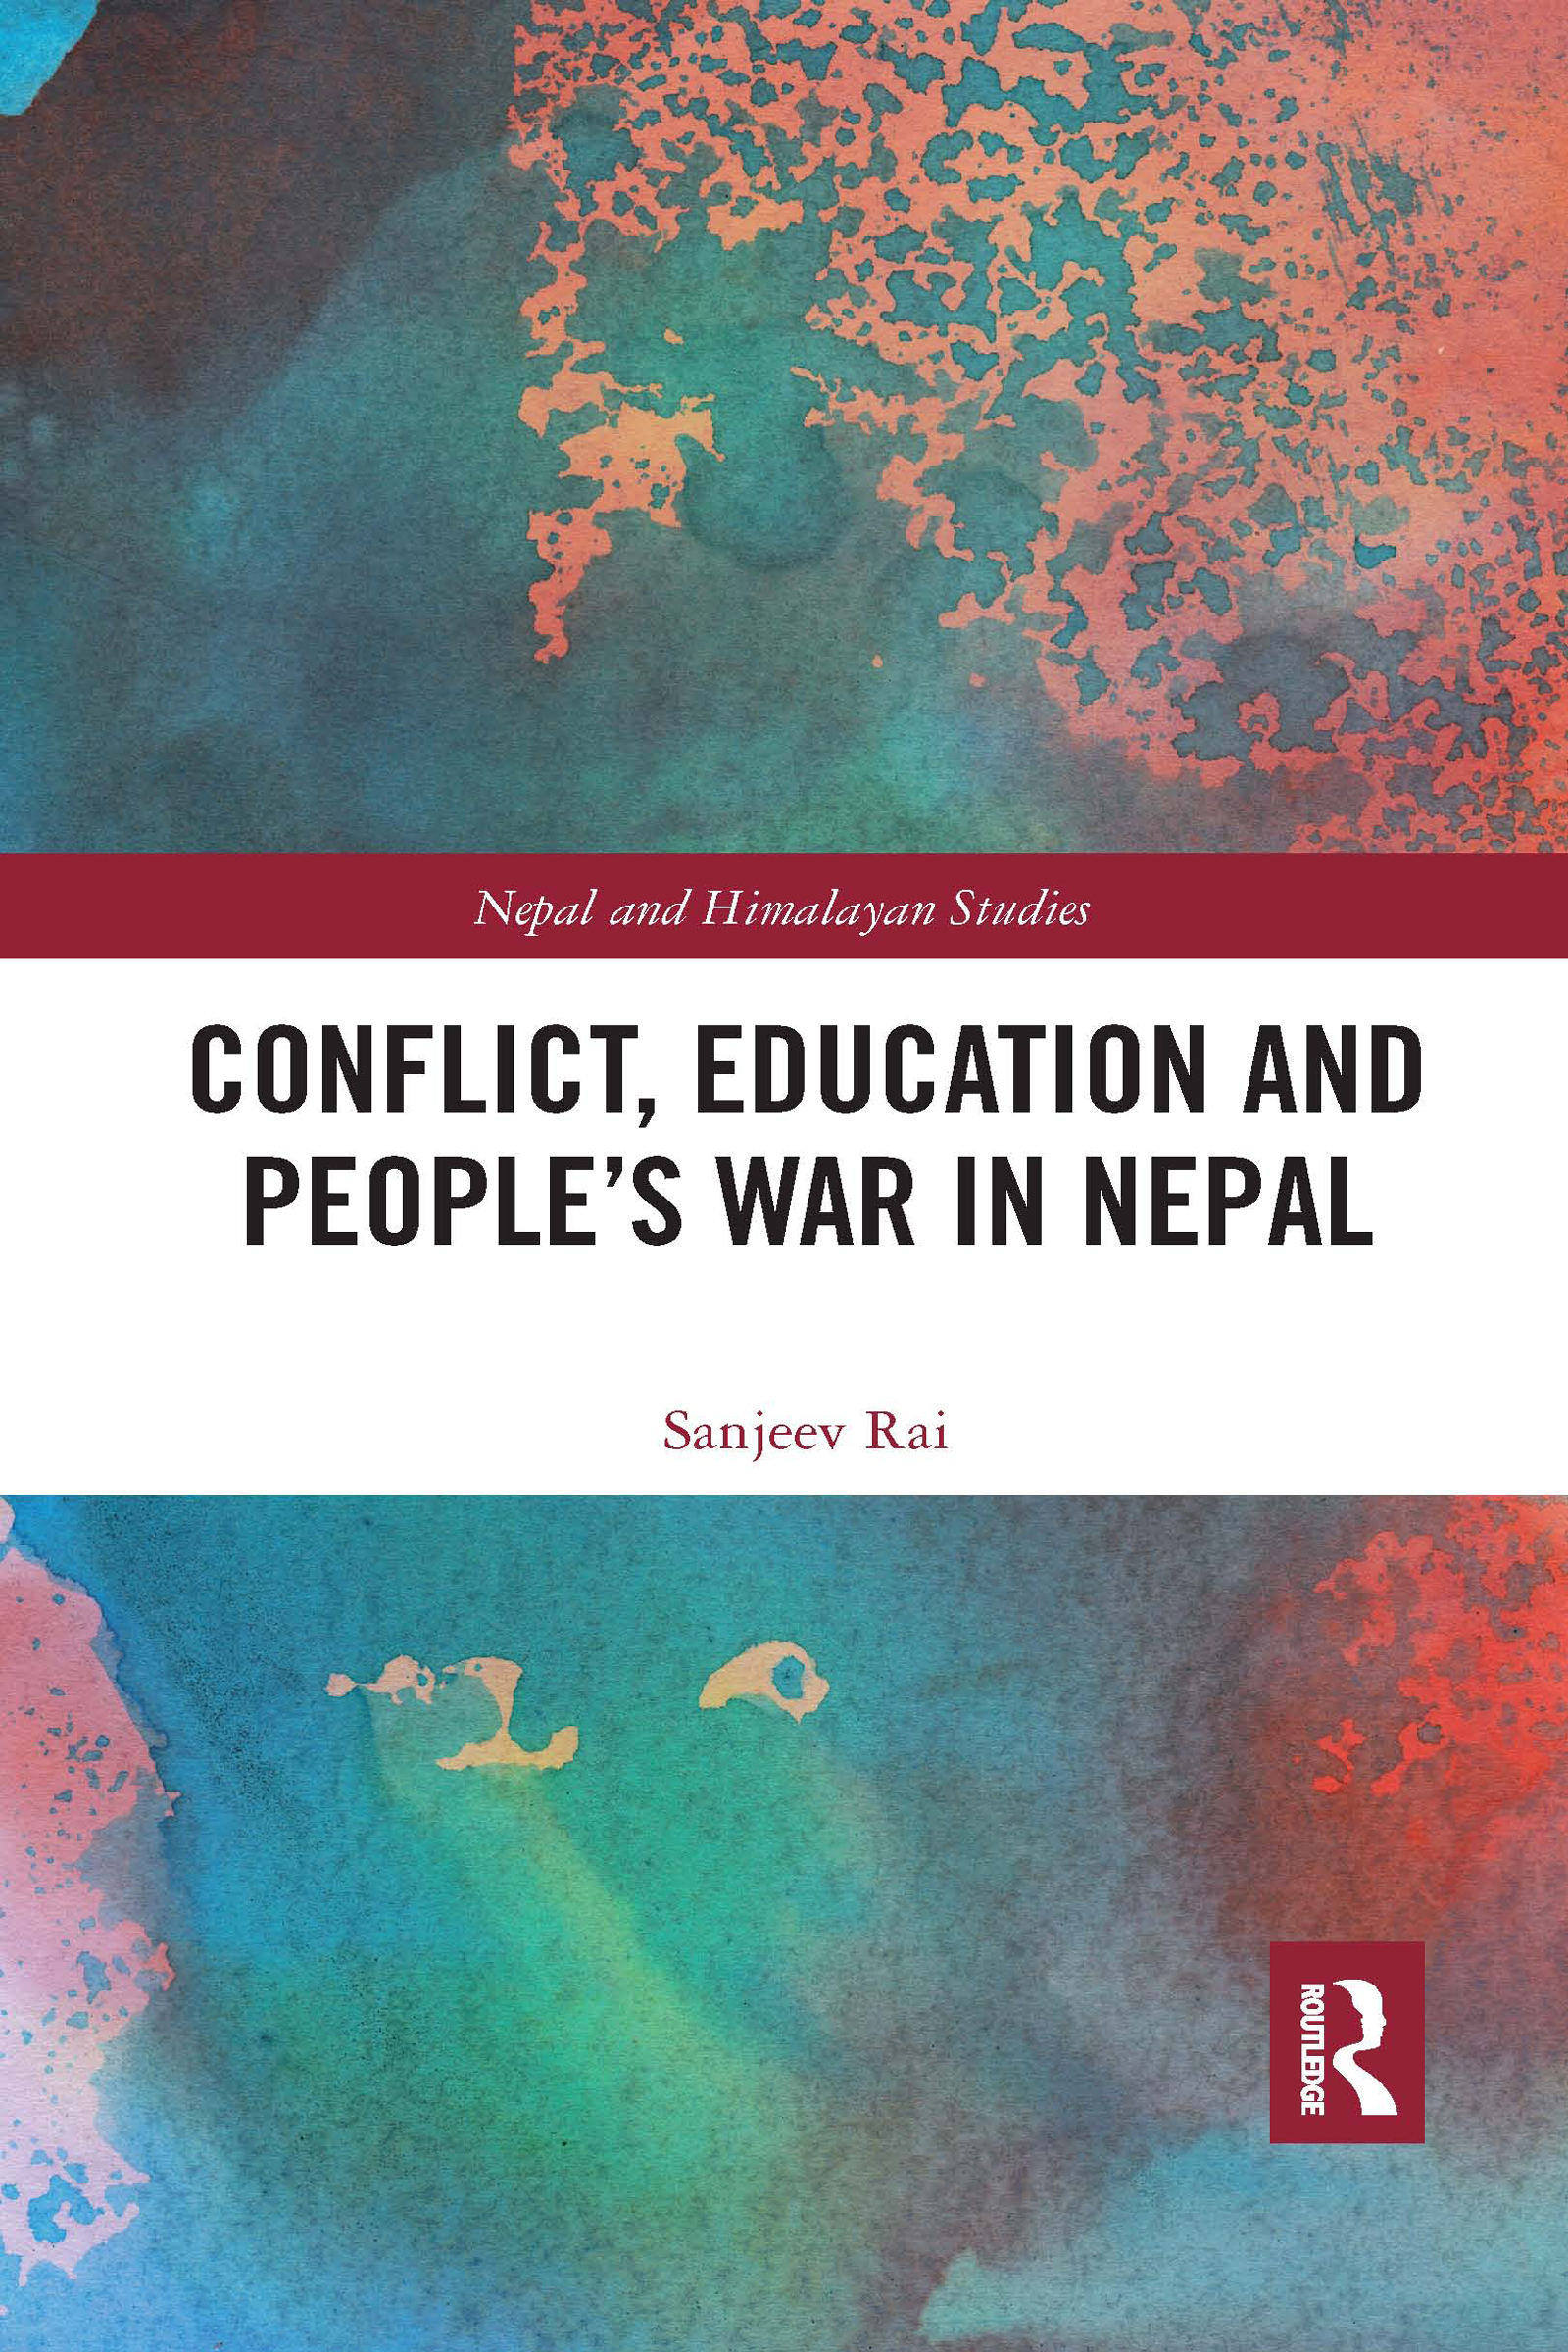 Conflict, Education and People's War in Nepal